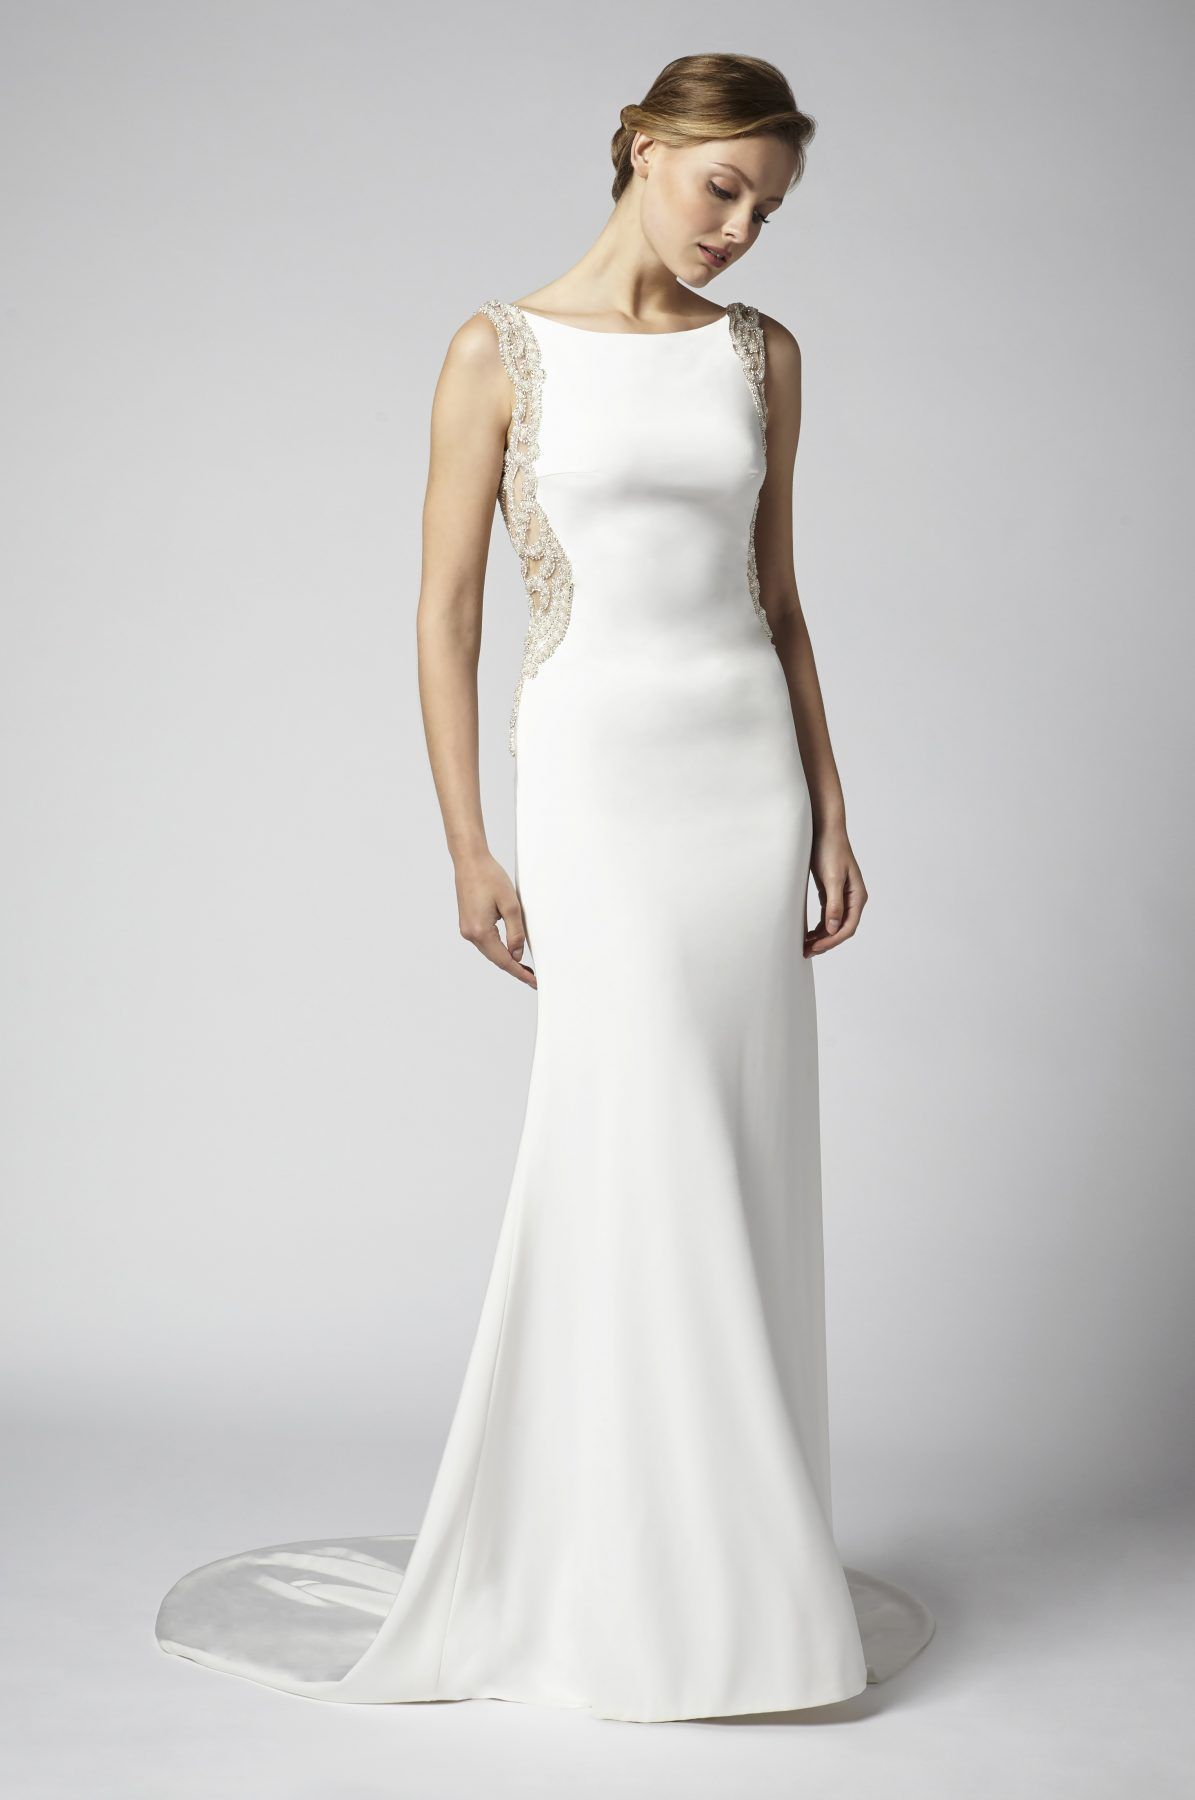 Simple sheath wedding dress with open back and beaded embellishments